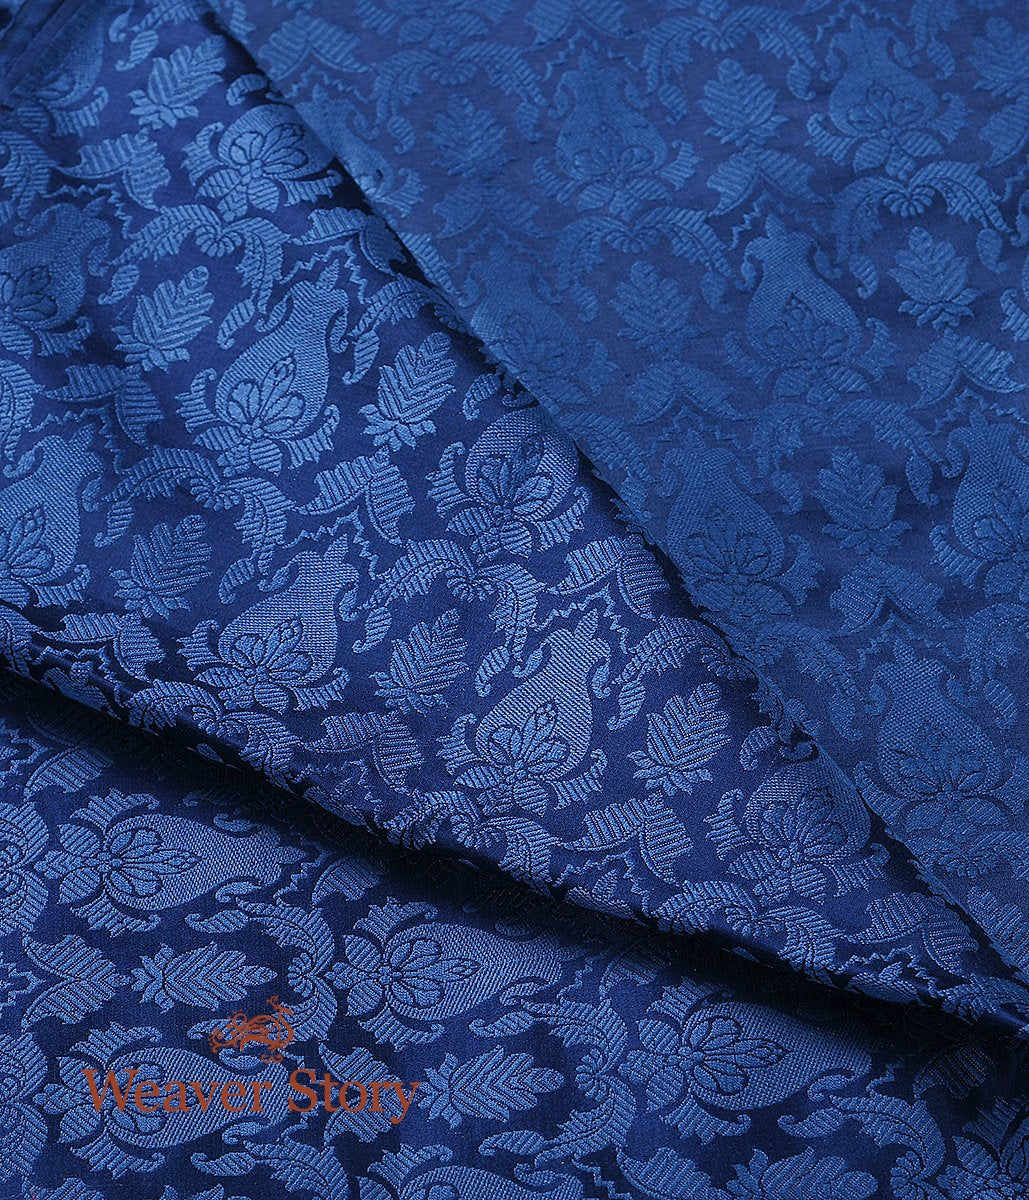 Handwoven Blue Pure Satin Kimkhab  Fabric